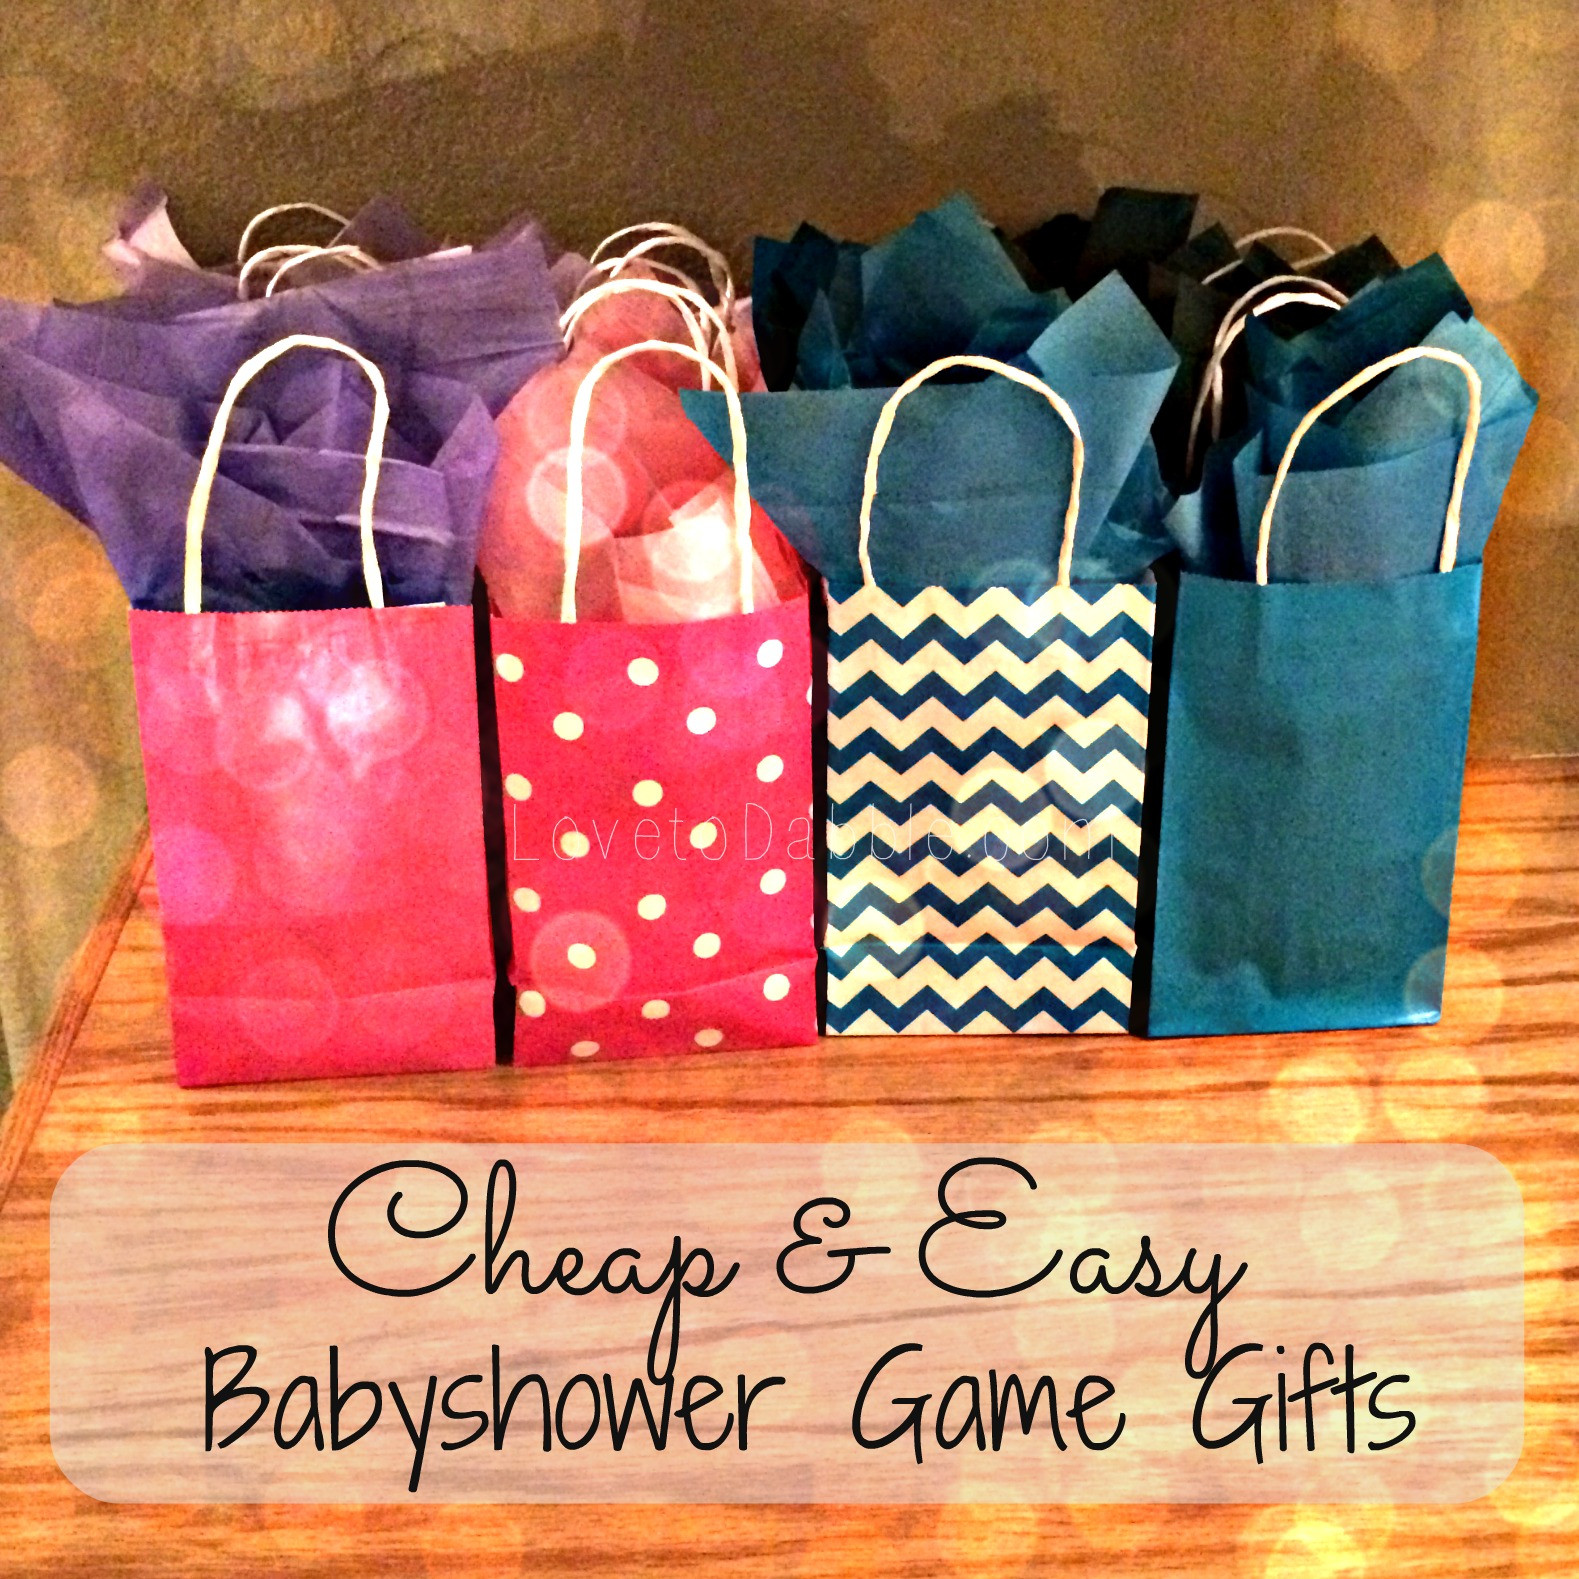 Best ideas about Baby Shower Games Gift Ideas . Save or Pin List Baby Shower Image Now.